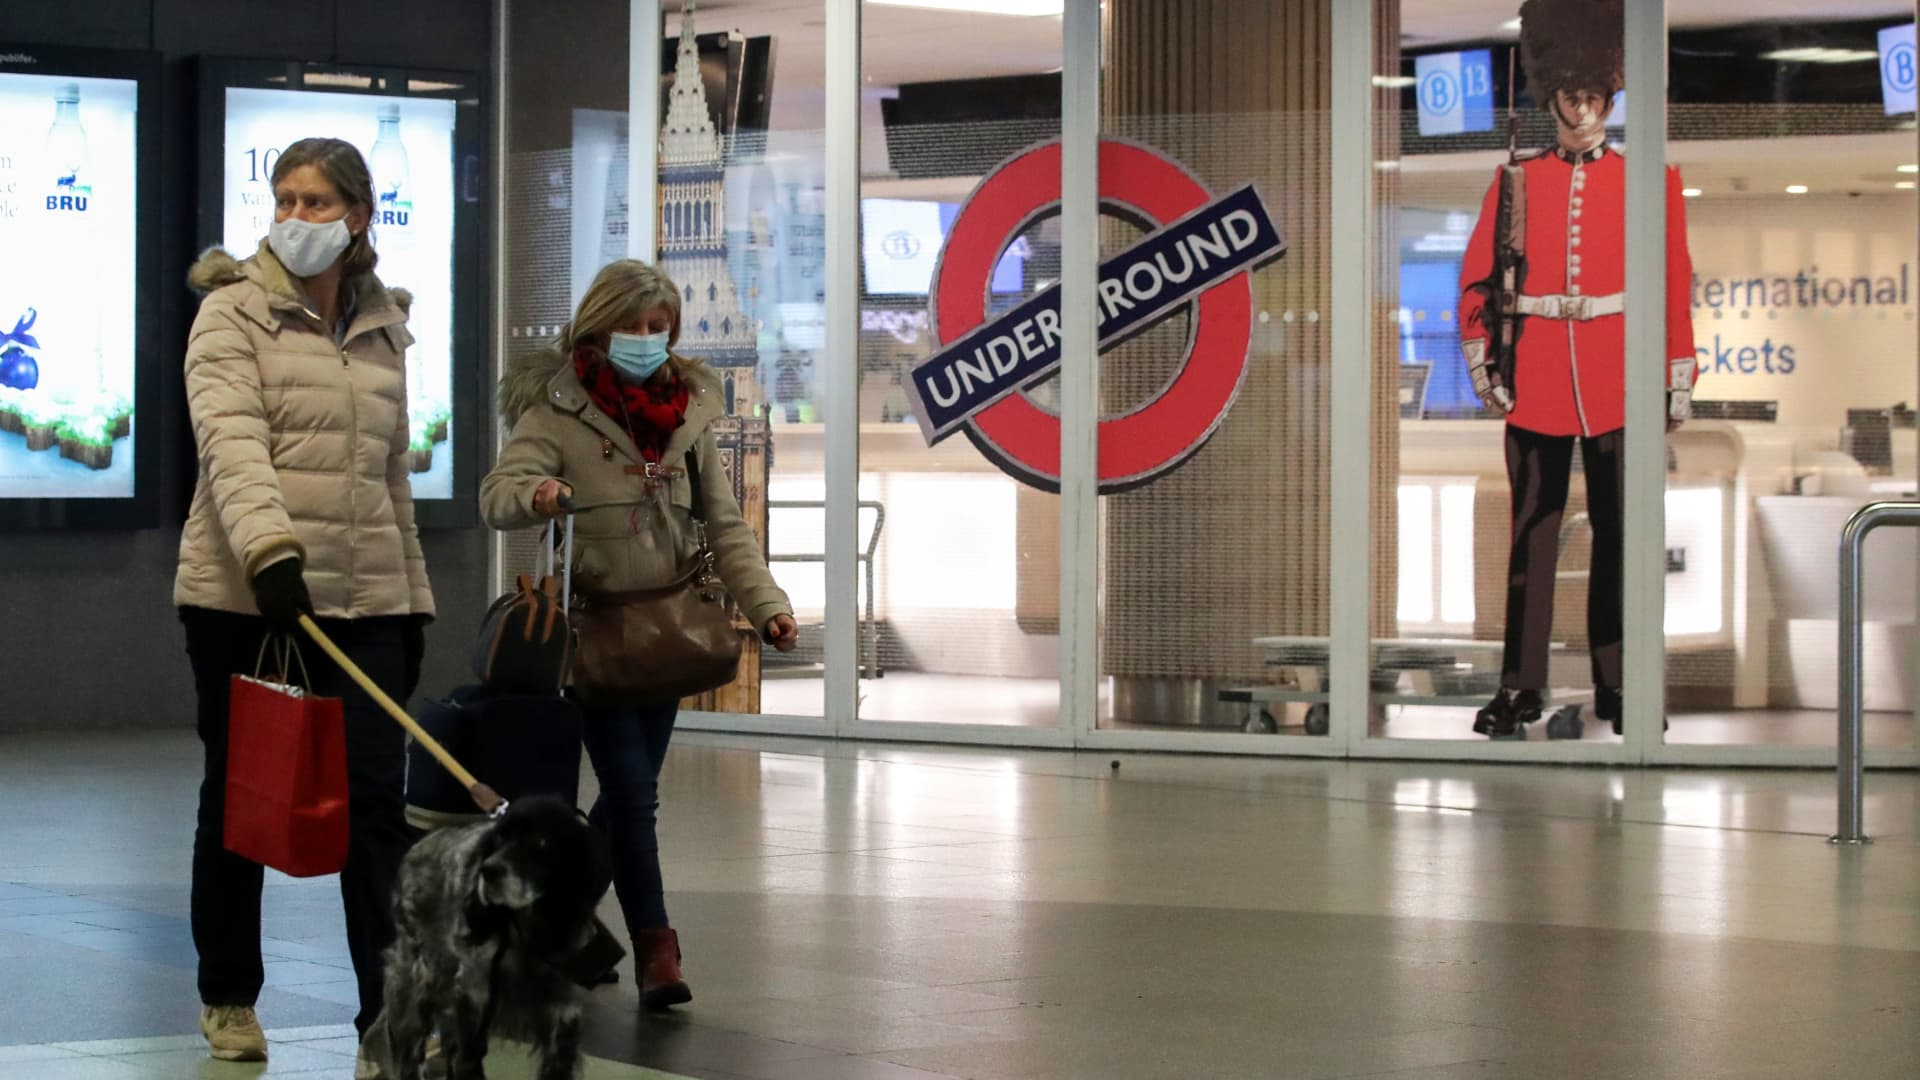 People walk past the closed entrance of the Eurostar terminal at Brussels South railway station after Britain's European neighbors began closing their doors to travelers from the United Kingdom amid alarm about a rapidly spreading strain of coronavirus, in Brussels, Belgium December 21, 2020.